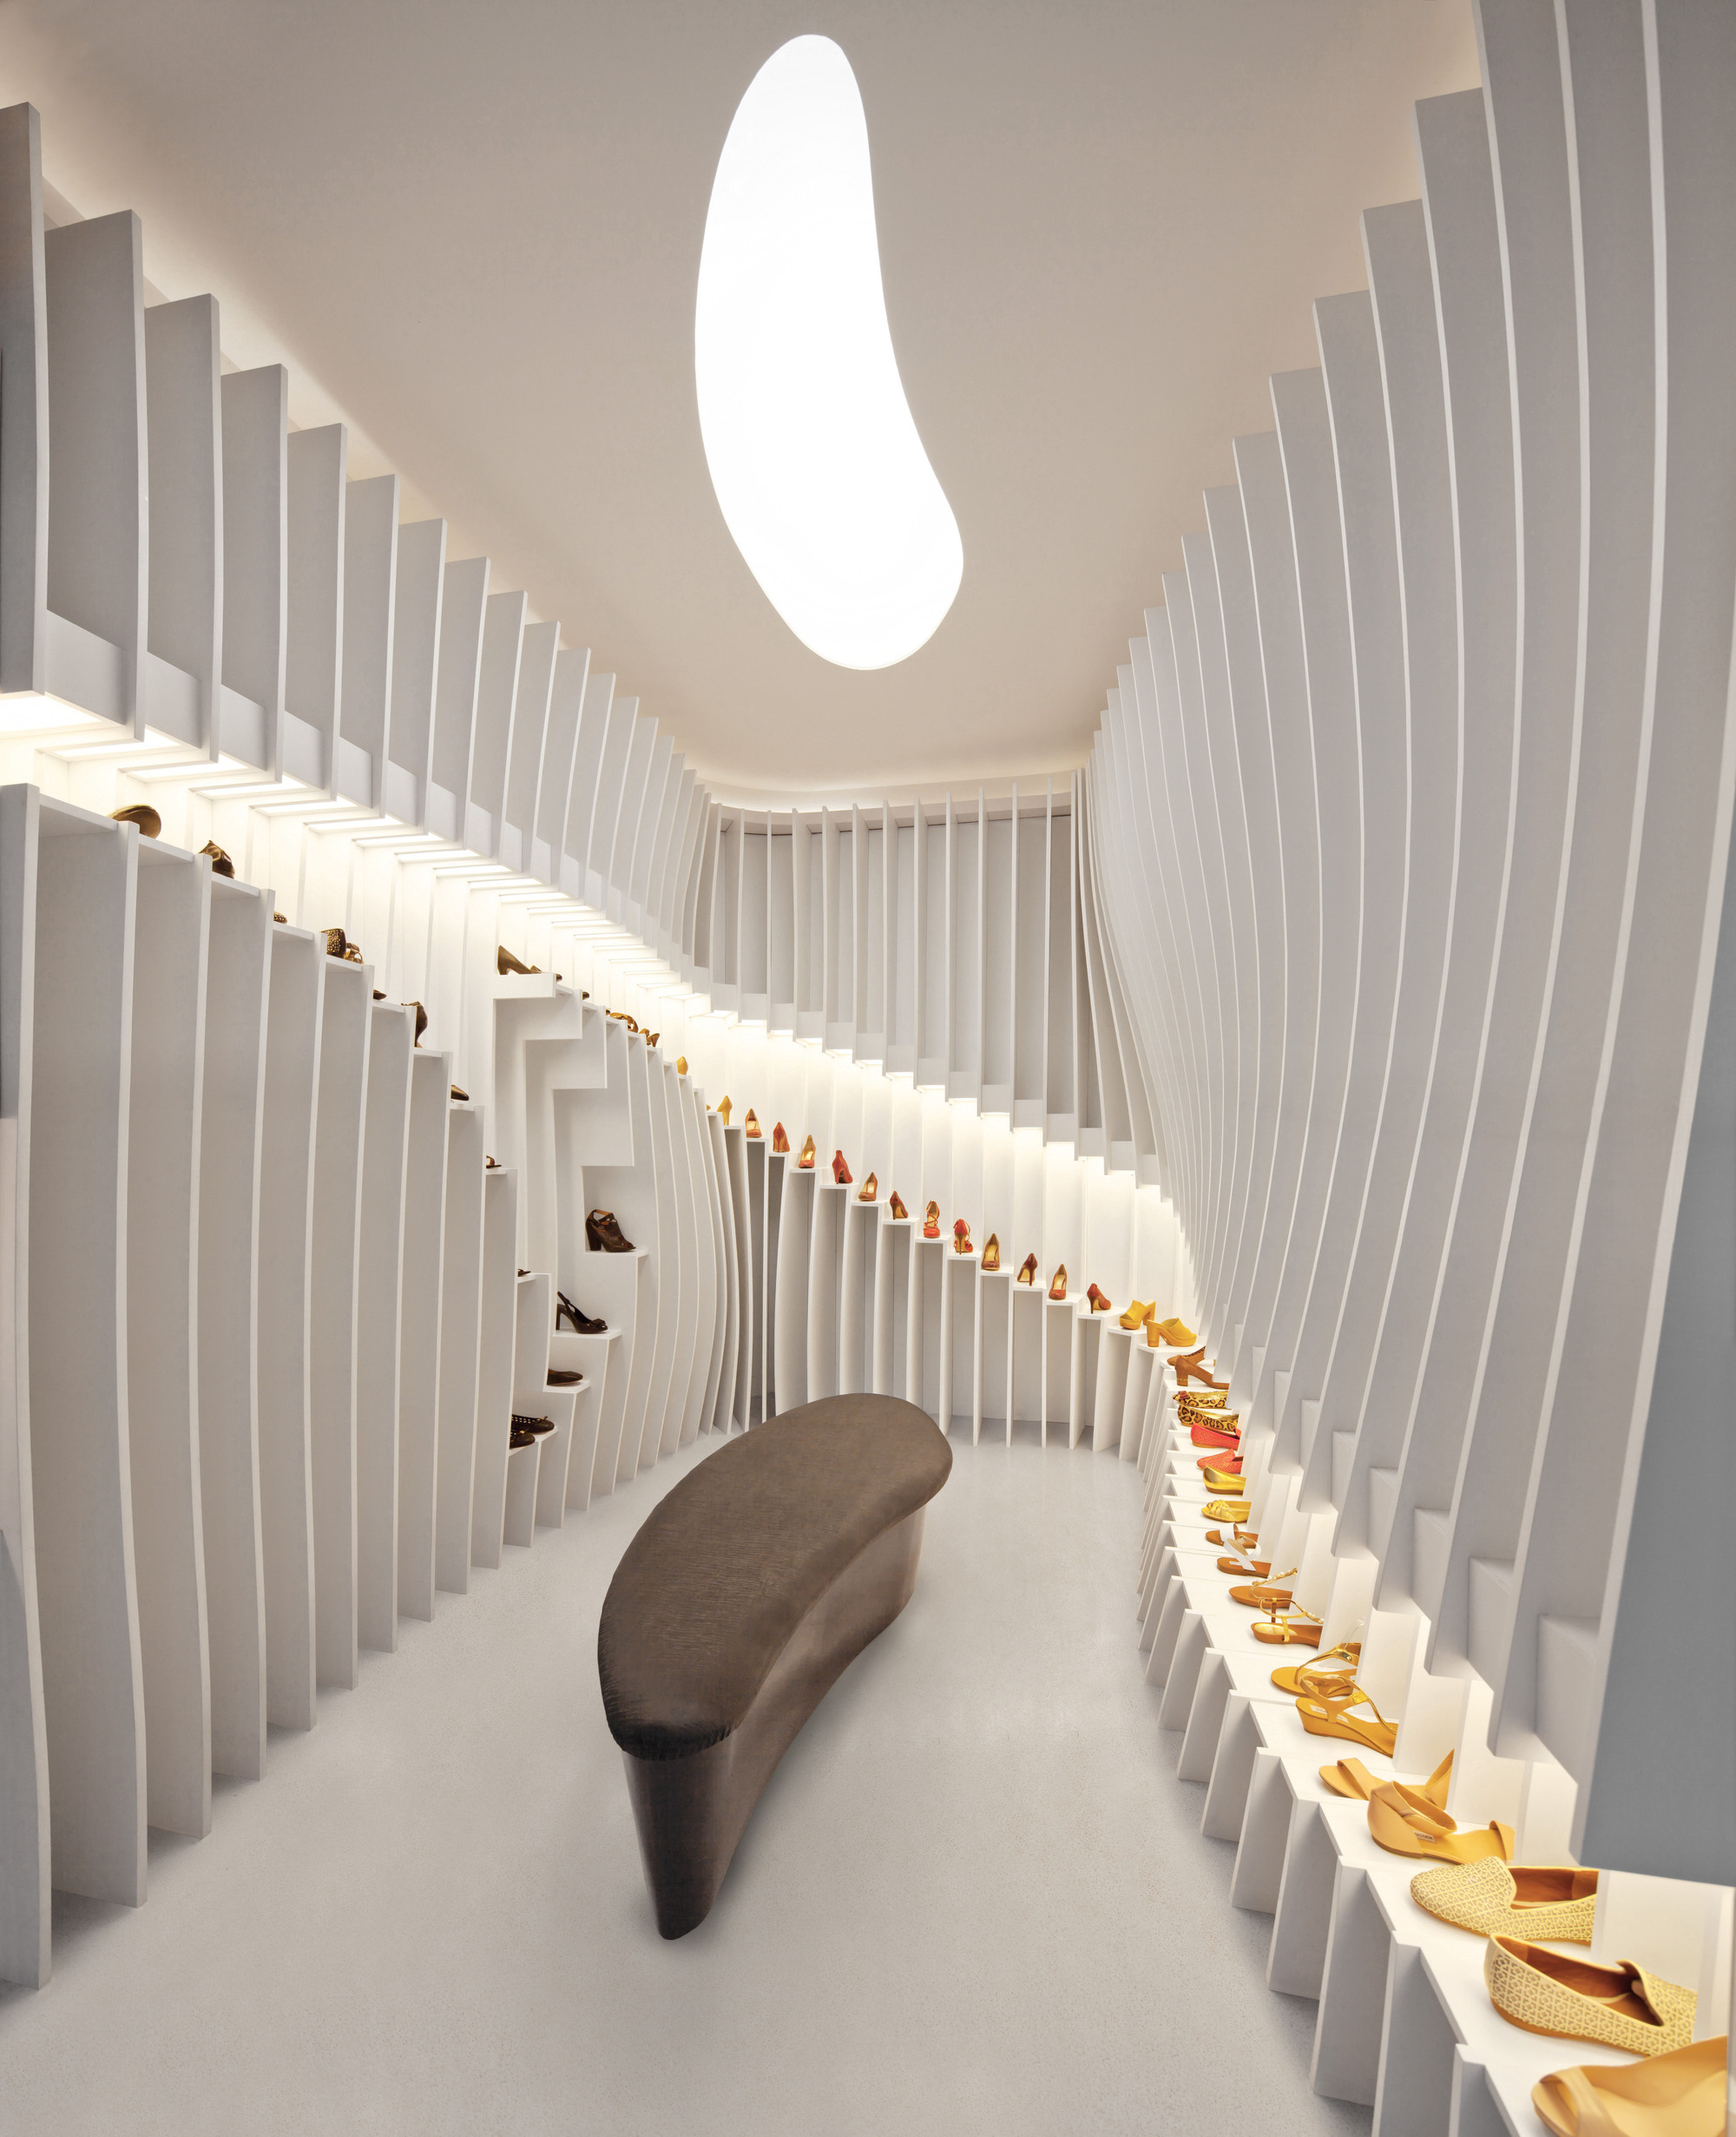 Interior Decorating Stores: 'Importance Of Walking' Store / PRAXiS D'ARCHITECTURE